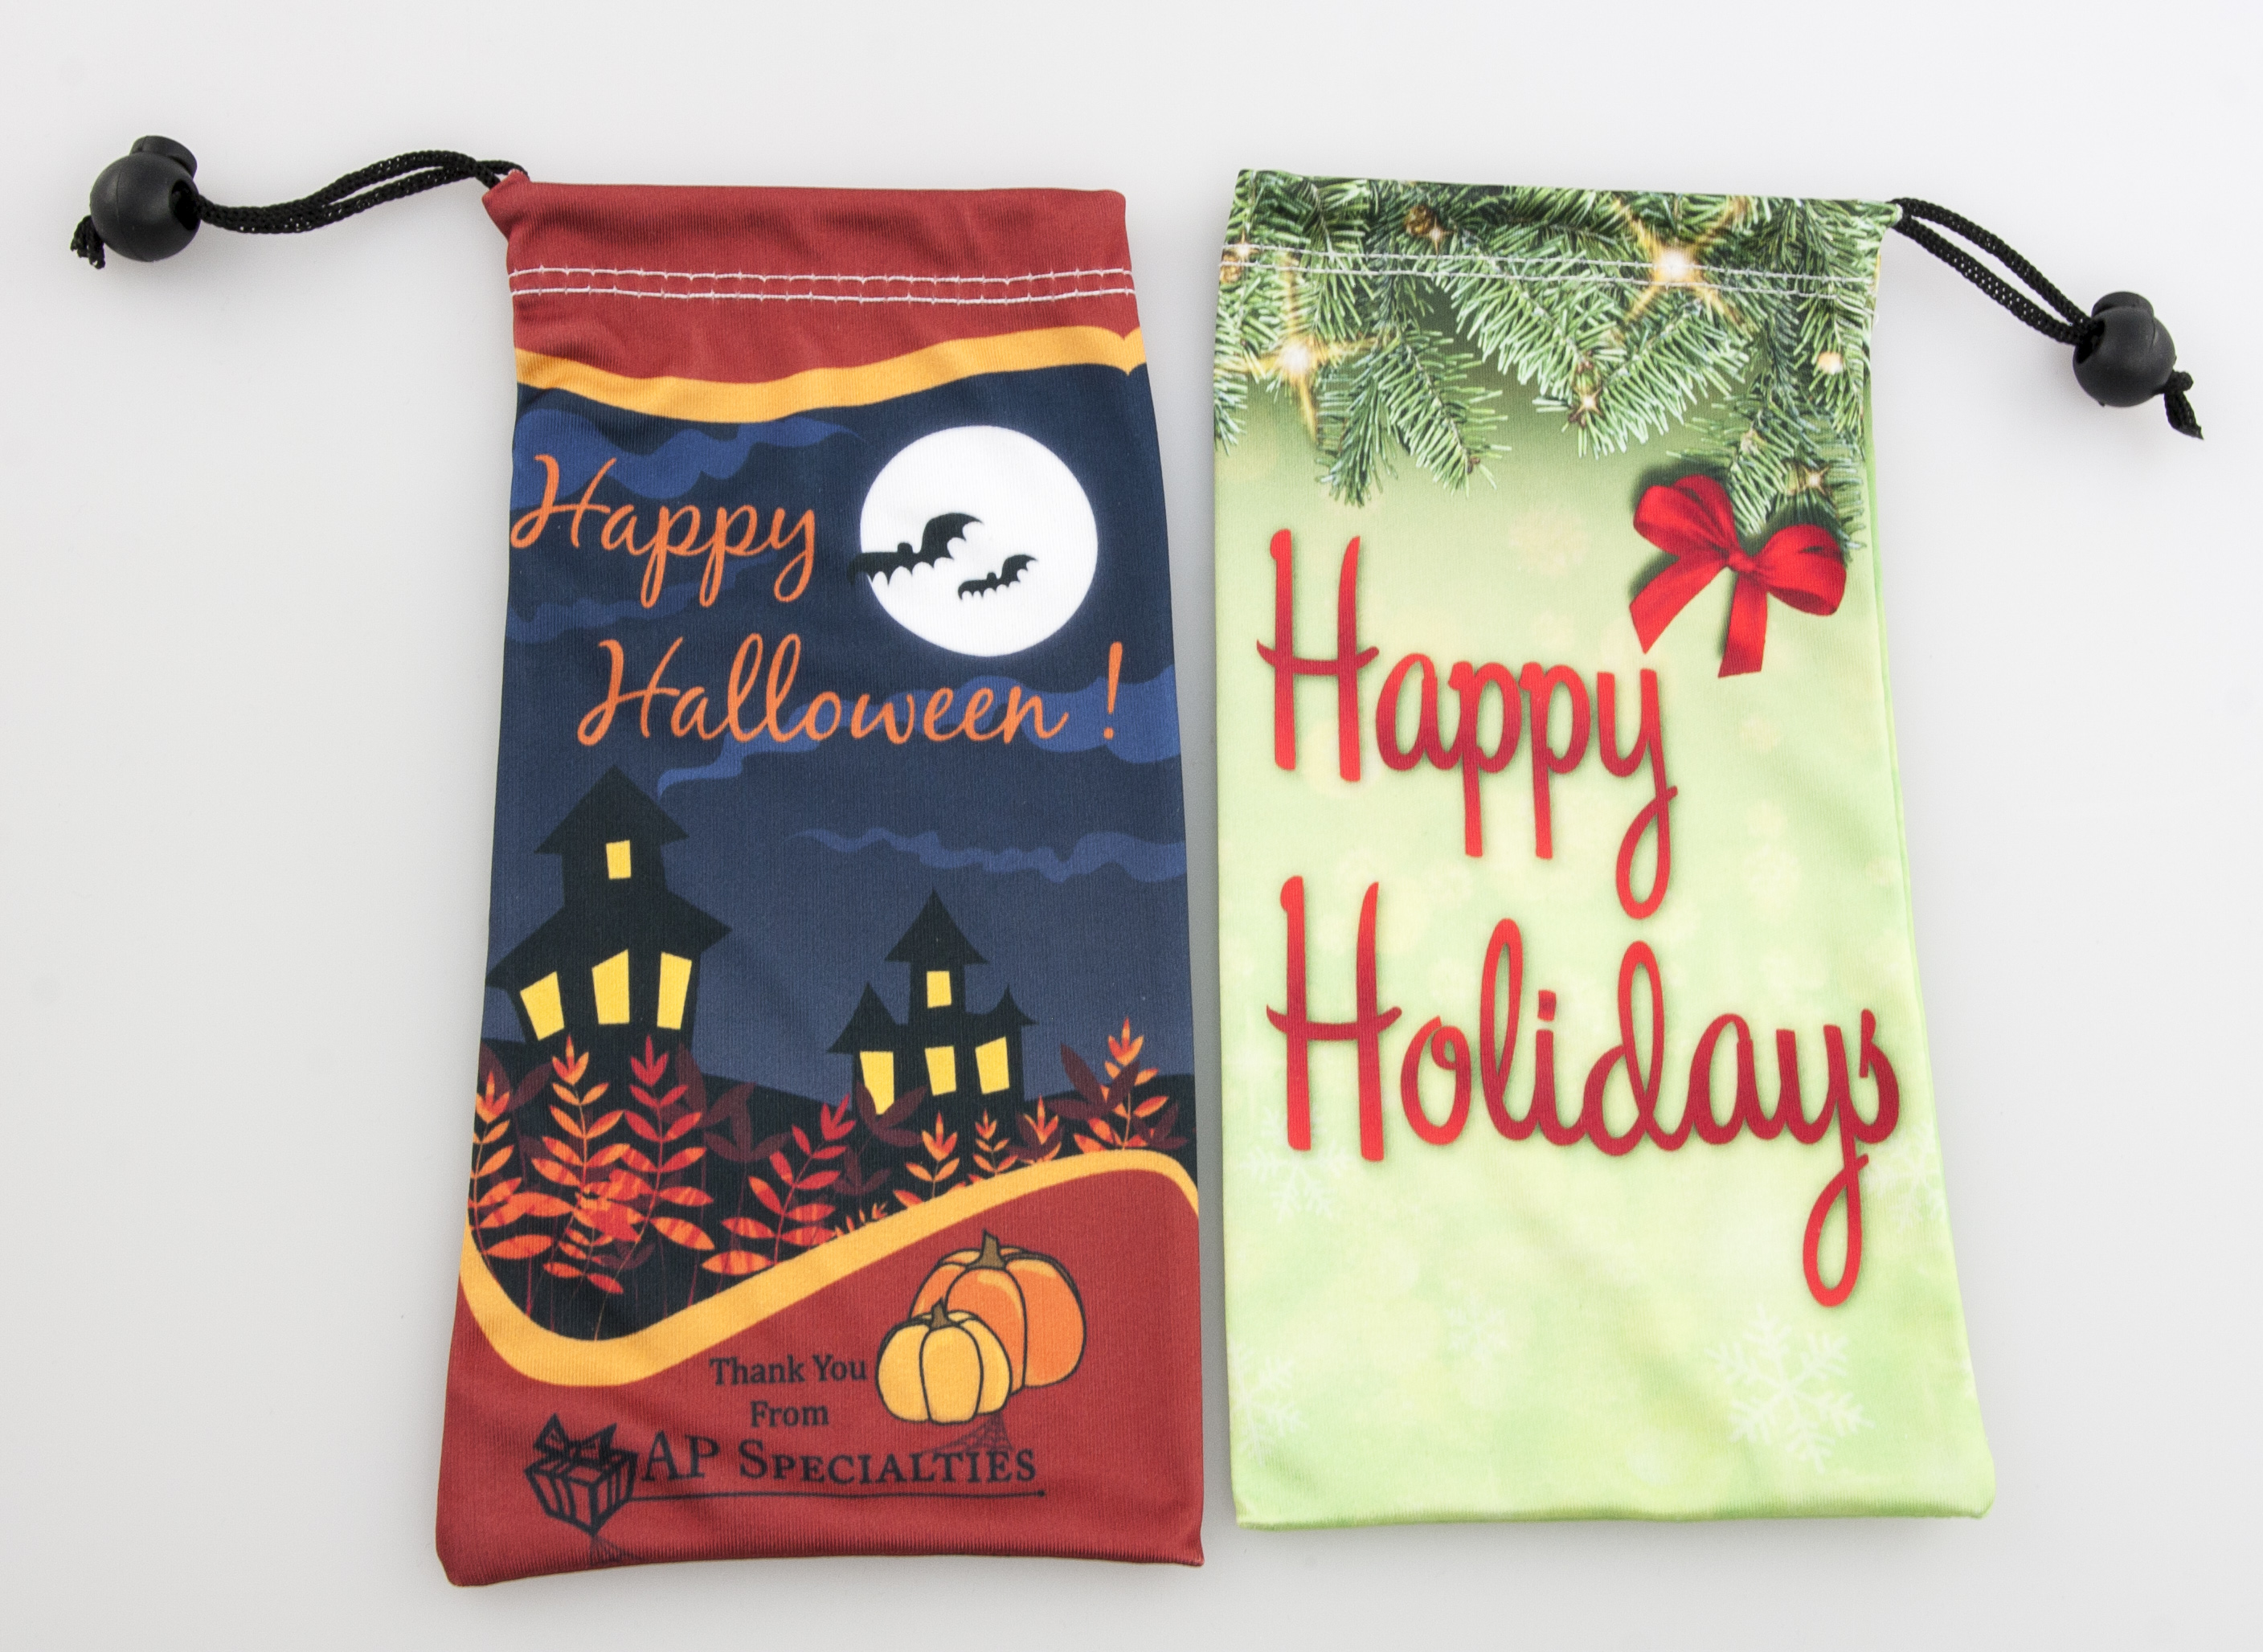 Holiday bag product designs